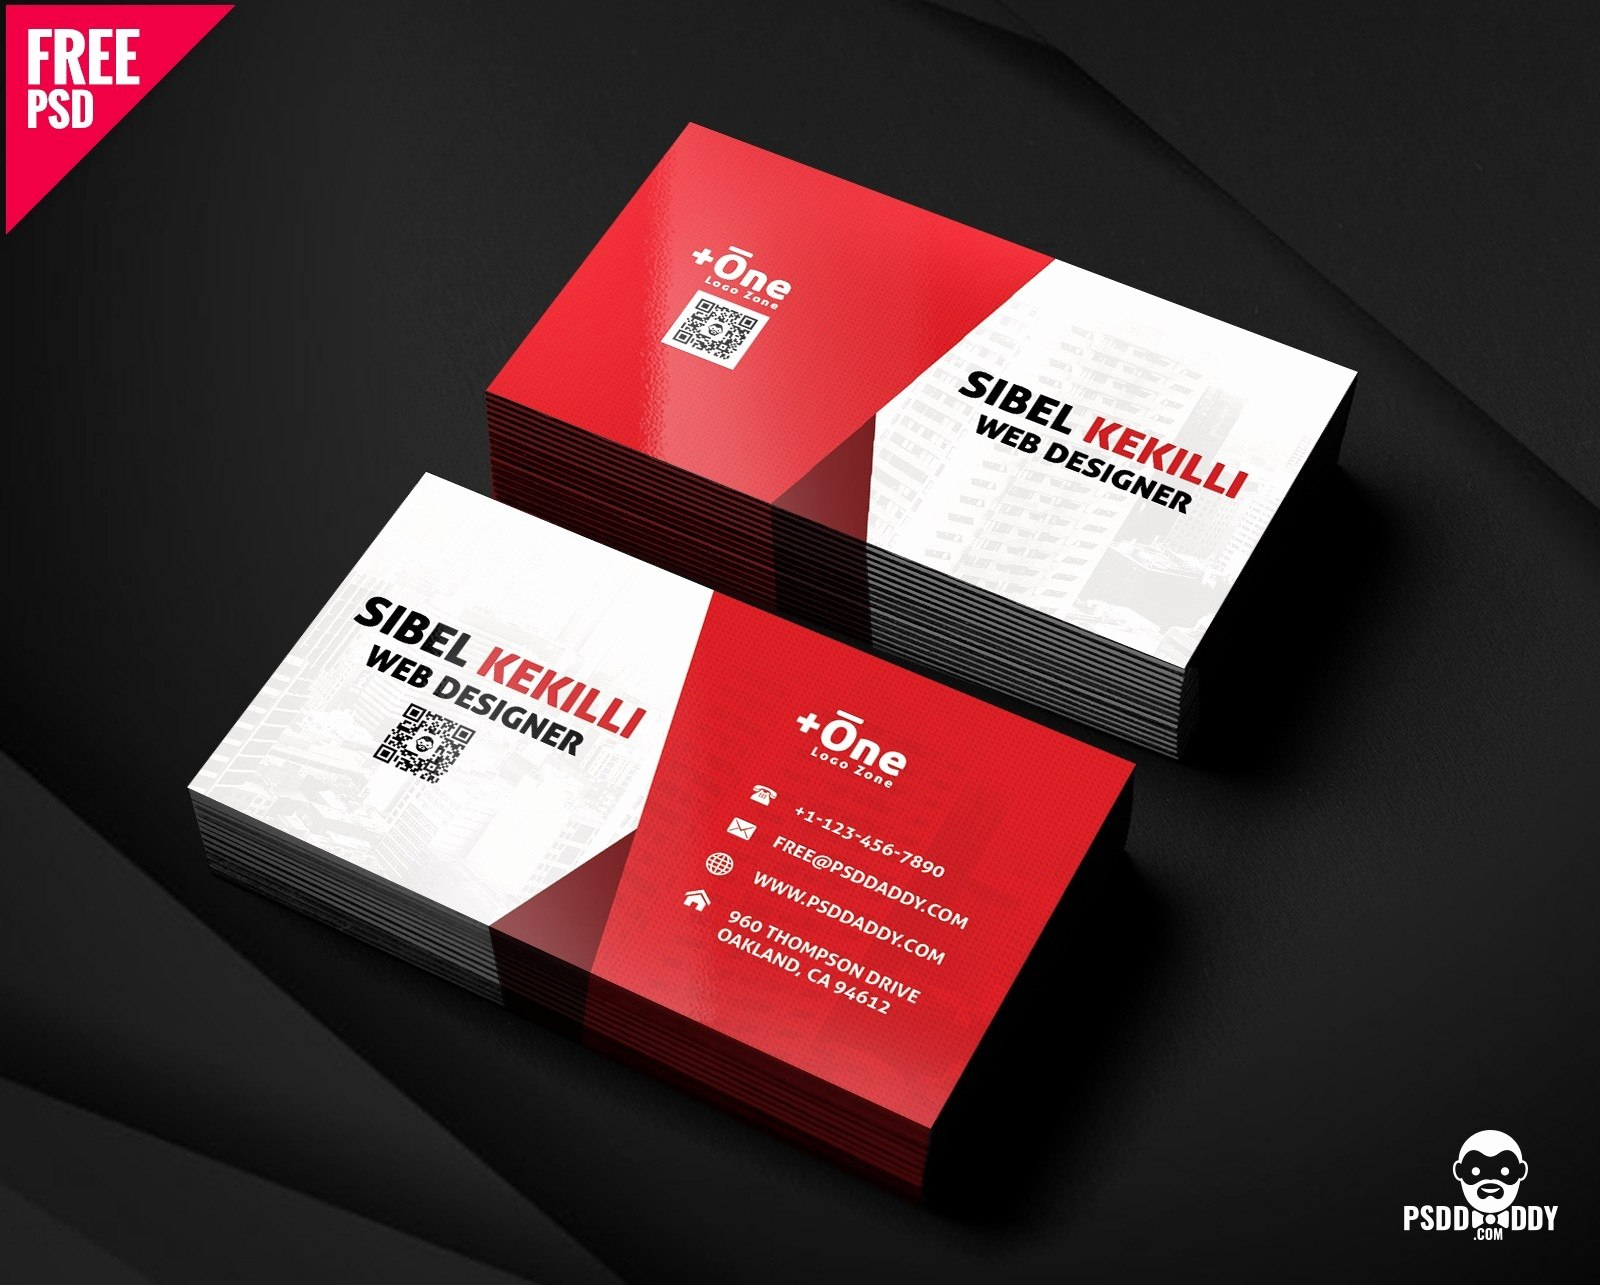 Beautiful Christian Business Cards Templates Free Throughout Christian Business Cards Templates Free